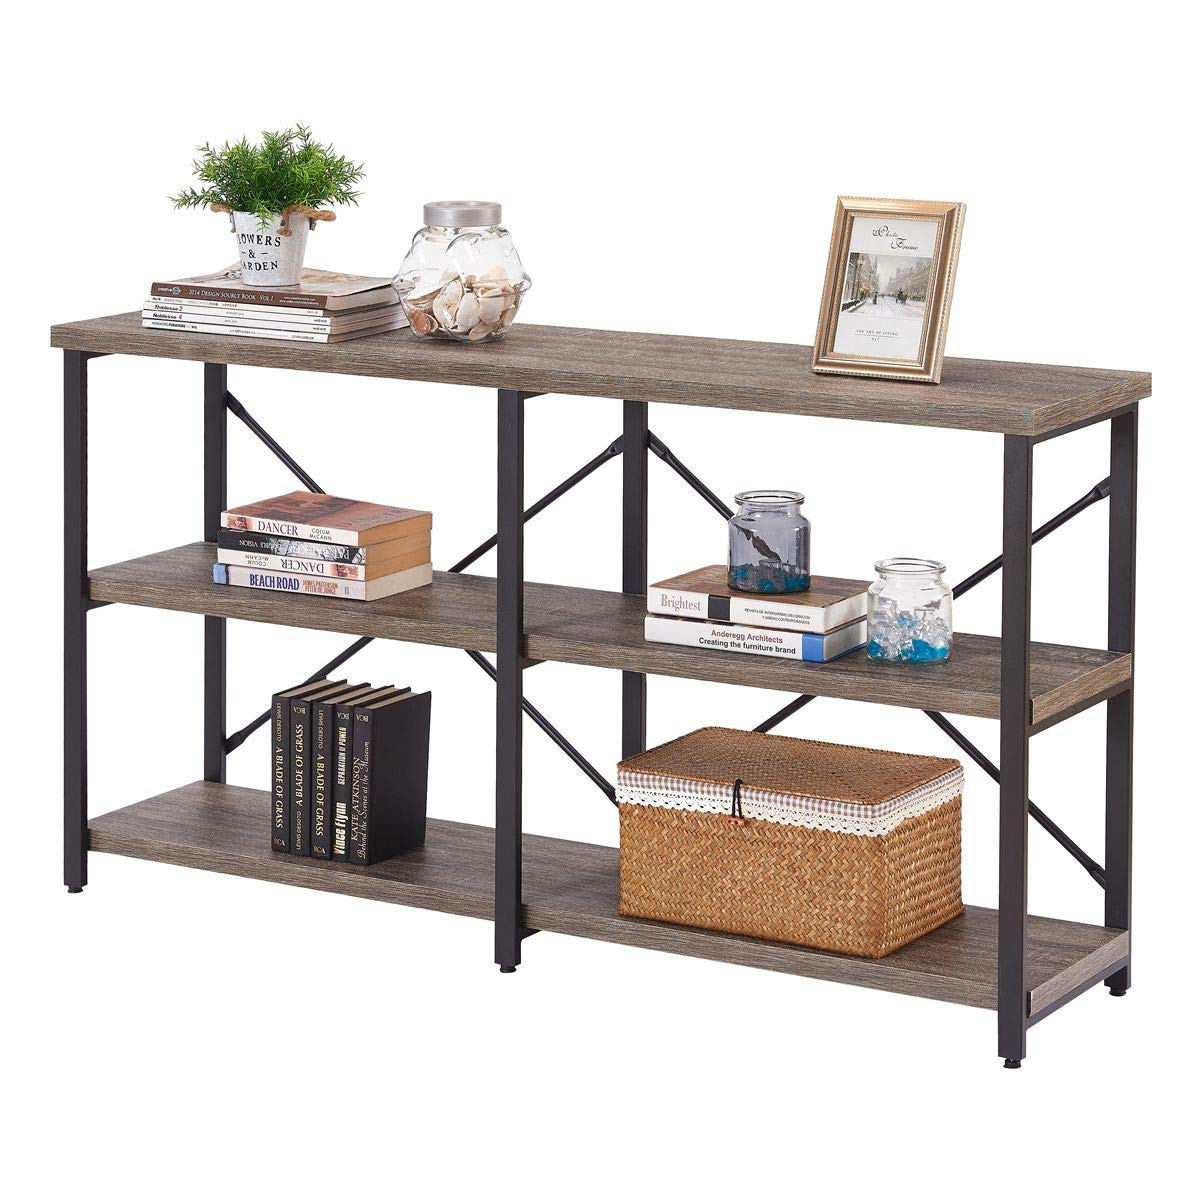 BON AUGURE Rustic Console Sofa Table, Industrial Hallway/Entryway Table, 3 Shelf Open Bookshelf (55 Inch, Dark Gray Oak)